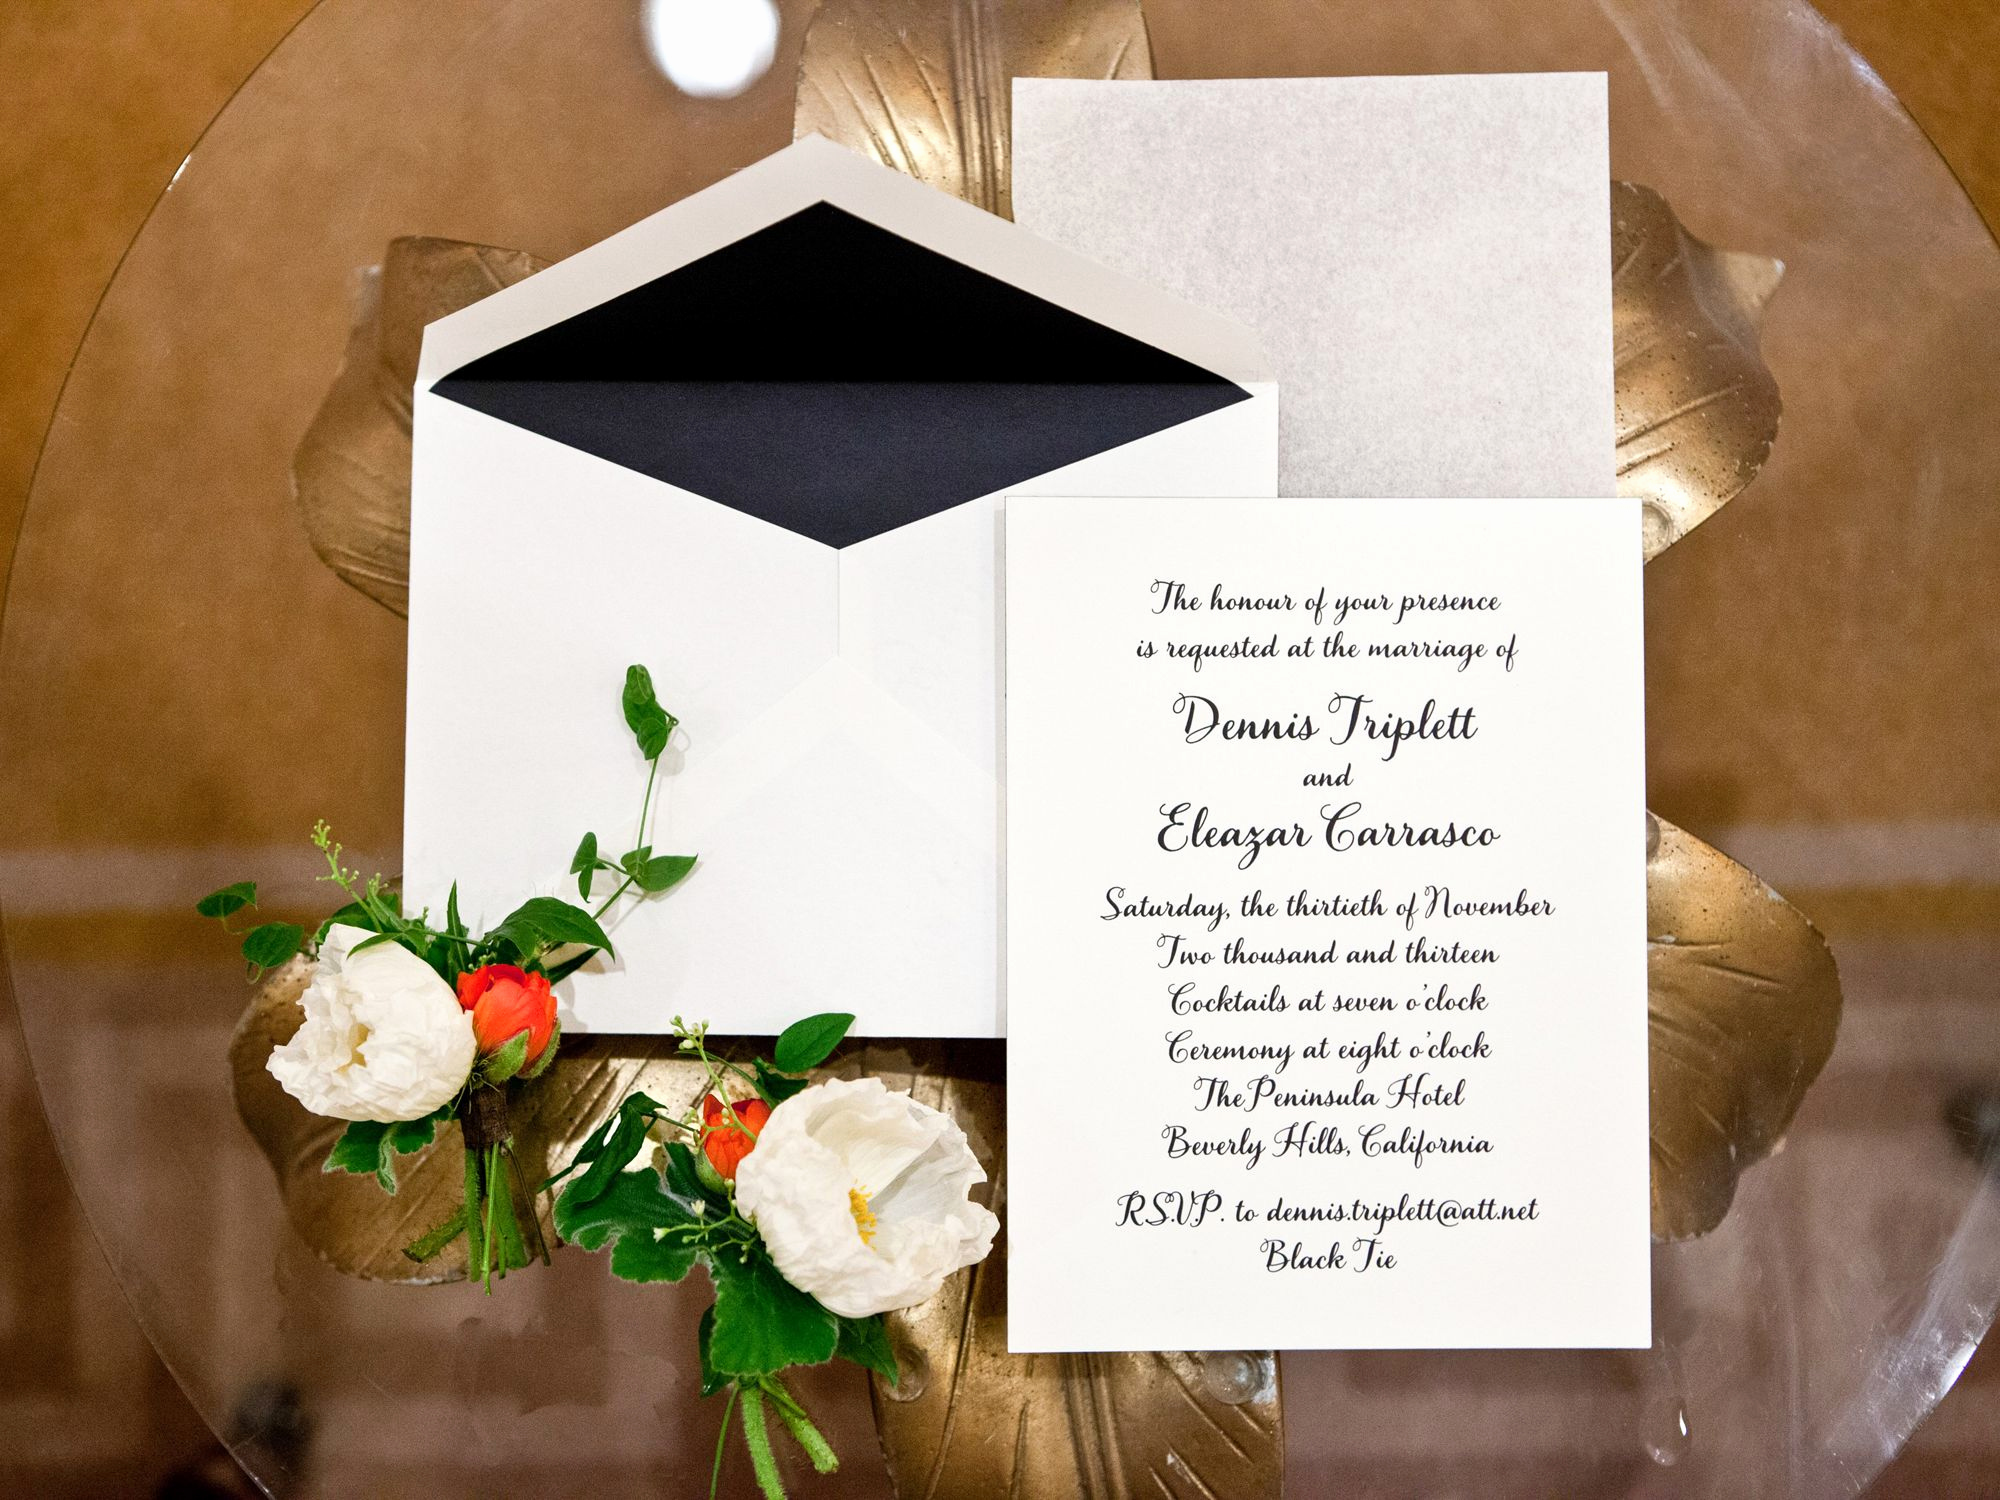 Couples Hosting Wedding Invitation Wording Beautiful Invitation Wording for the Couple Hosting the Affair